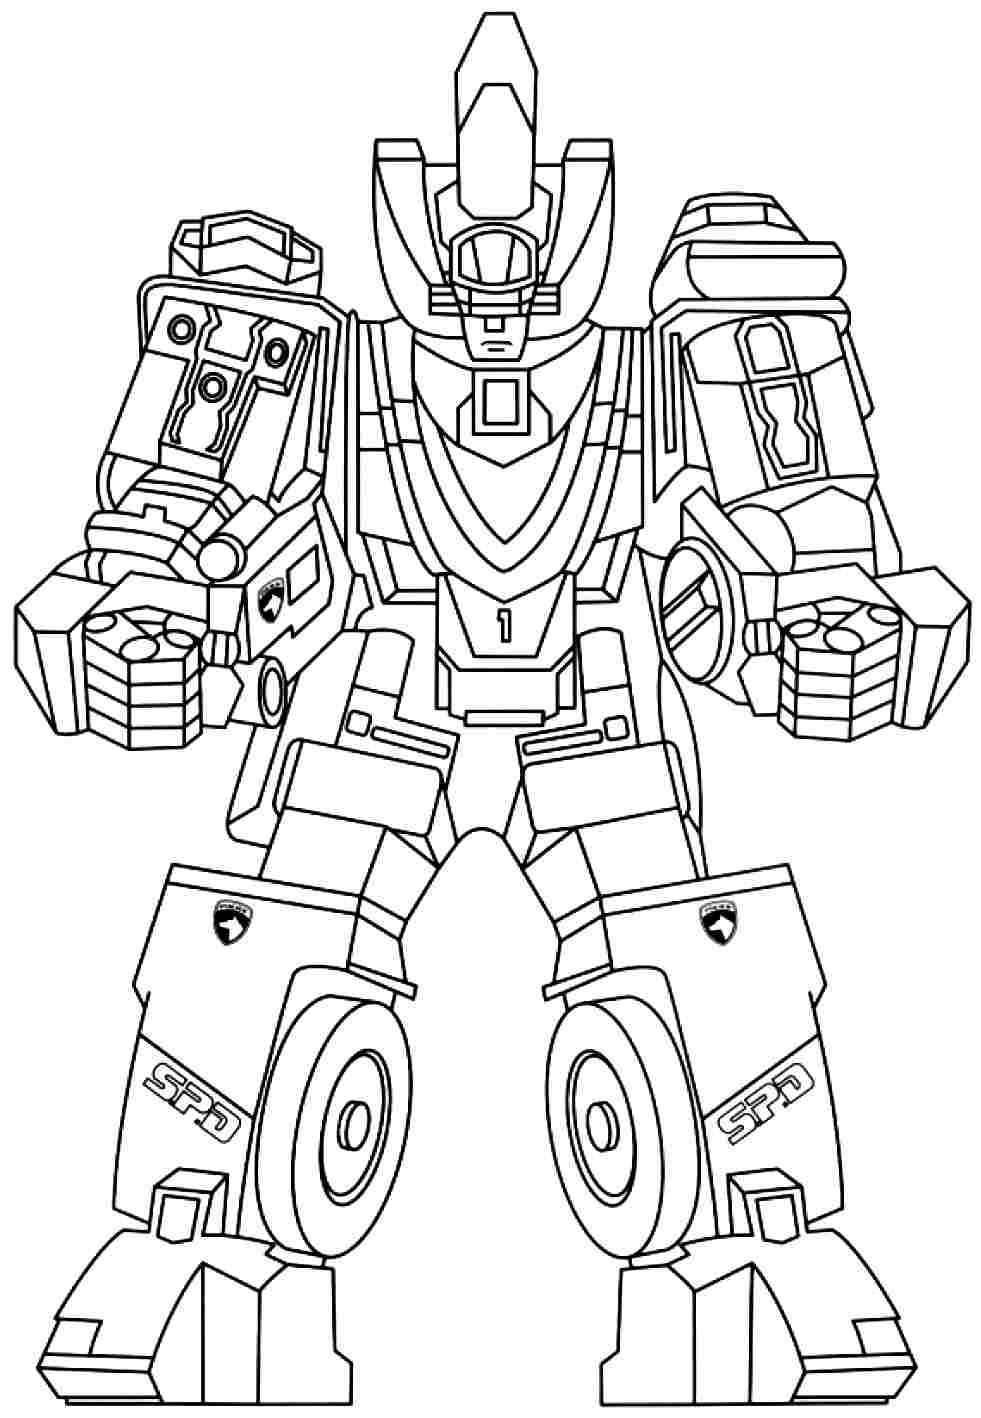 coloring pages for kids power rangers power rangers pose holding a dart guns coloriage power power rangers for coloring pages kids